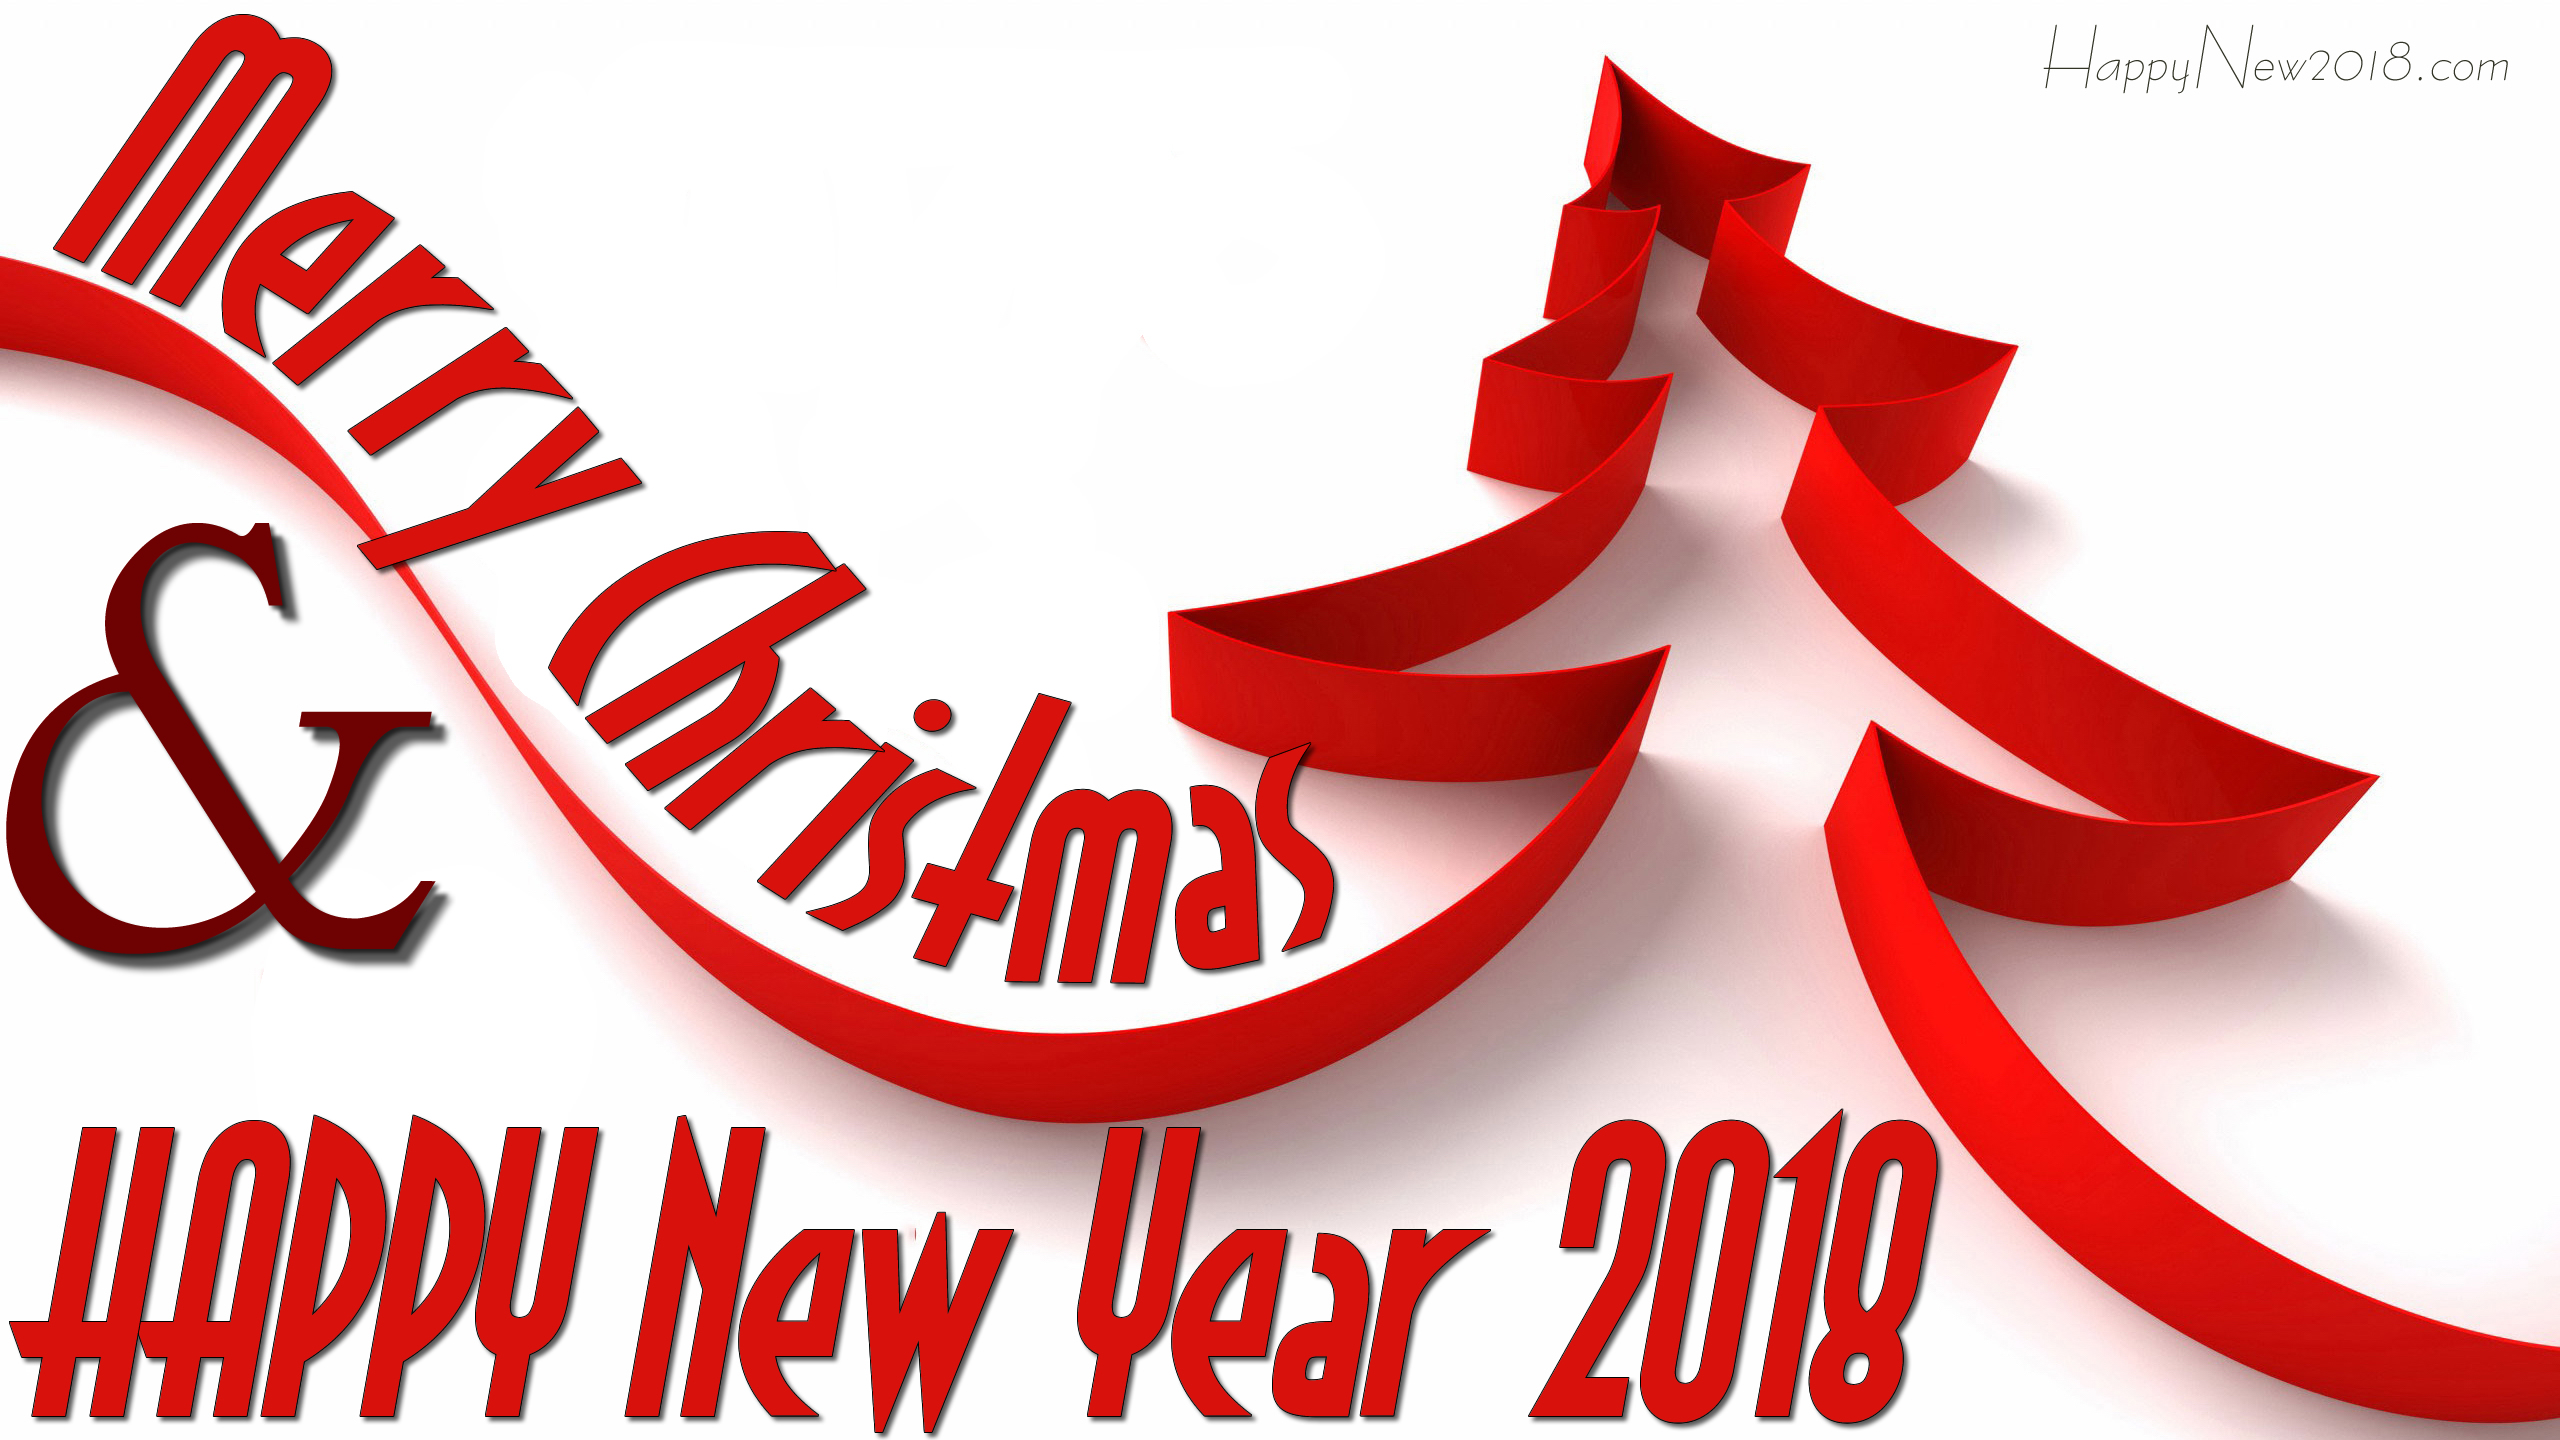 Clipart merry christmas and happy new year 2018 clip transparent stock Merry-Christmas-And-Happy-New-Year-2018 - Malta Association of Small ... clip transparent stock